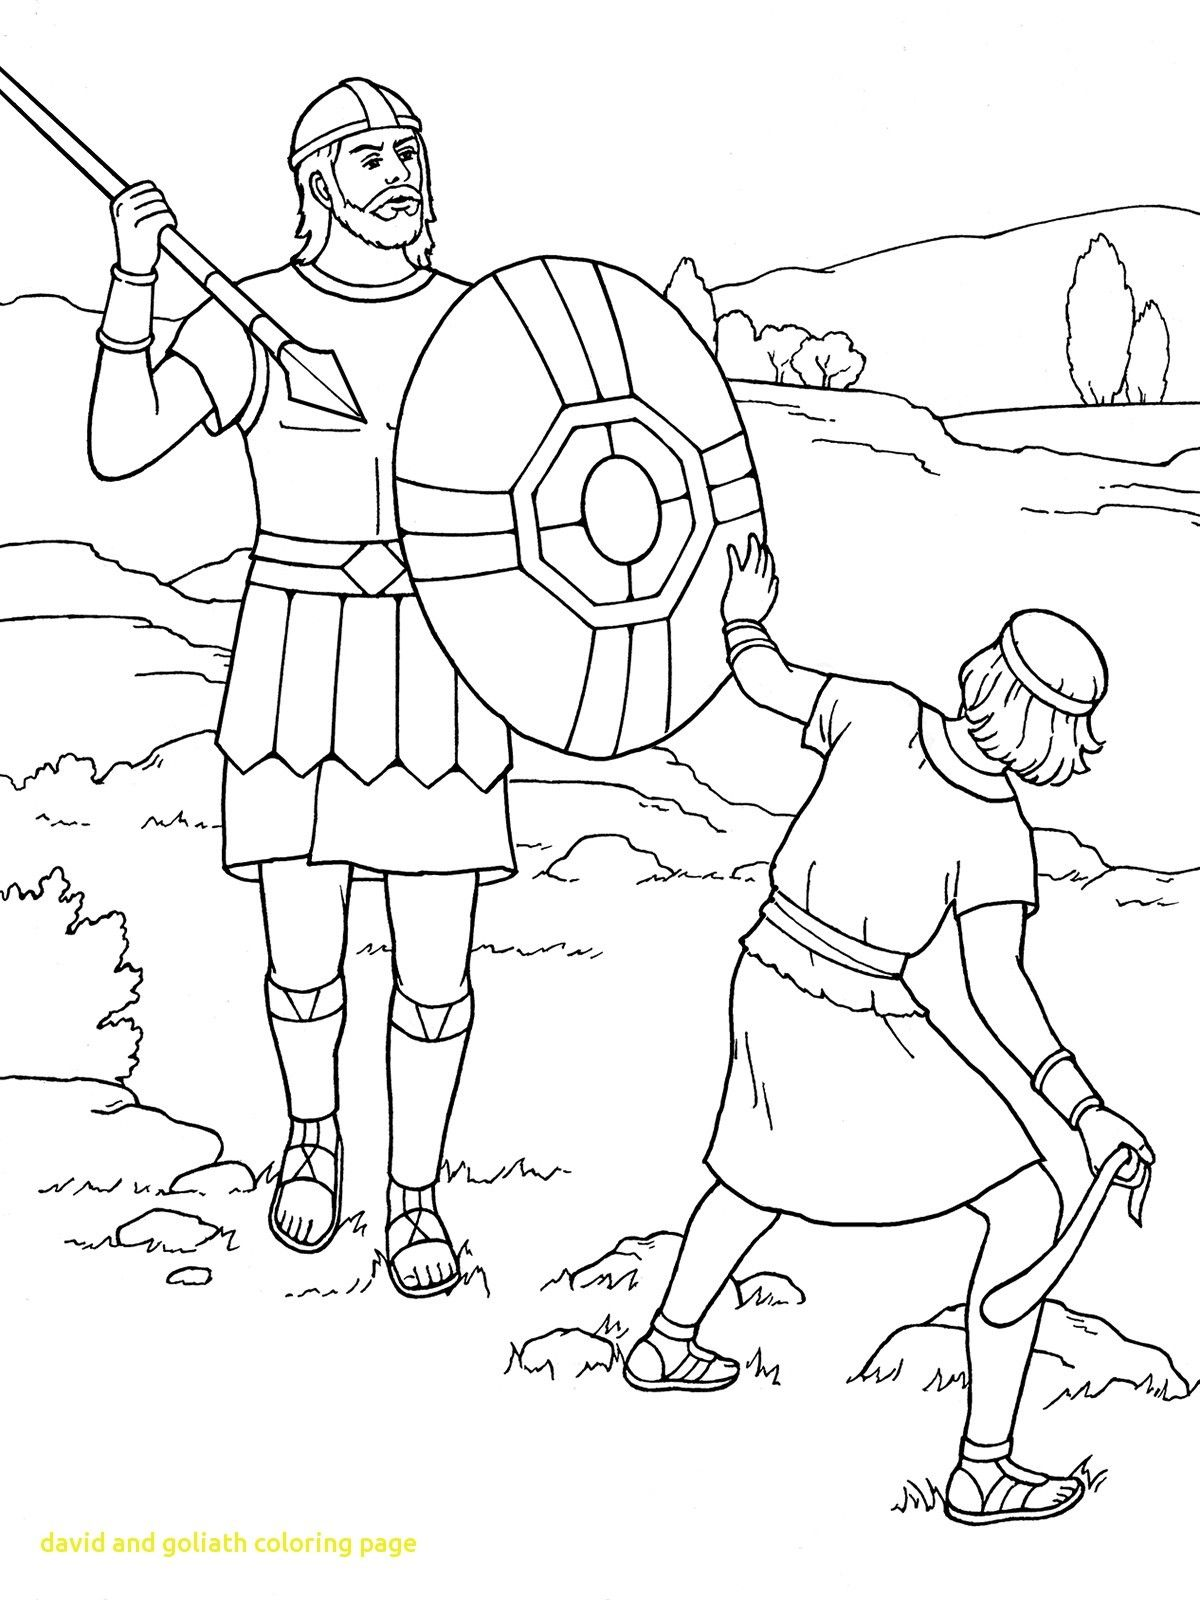 Unique Ideas David And Goliath Coloring Pages For Toddlers Sheet